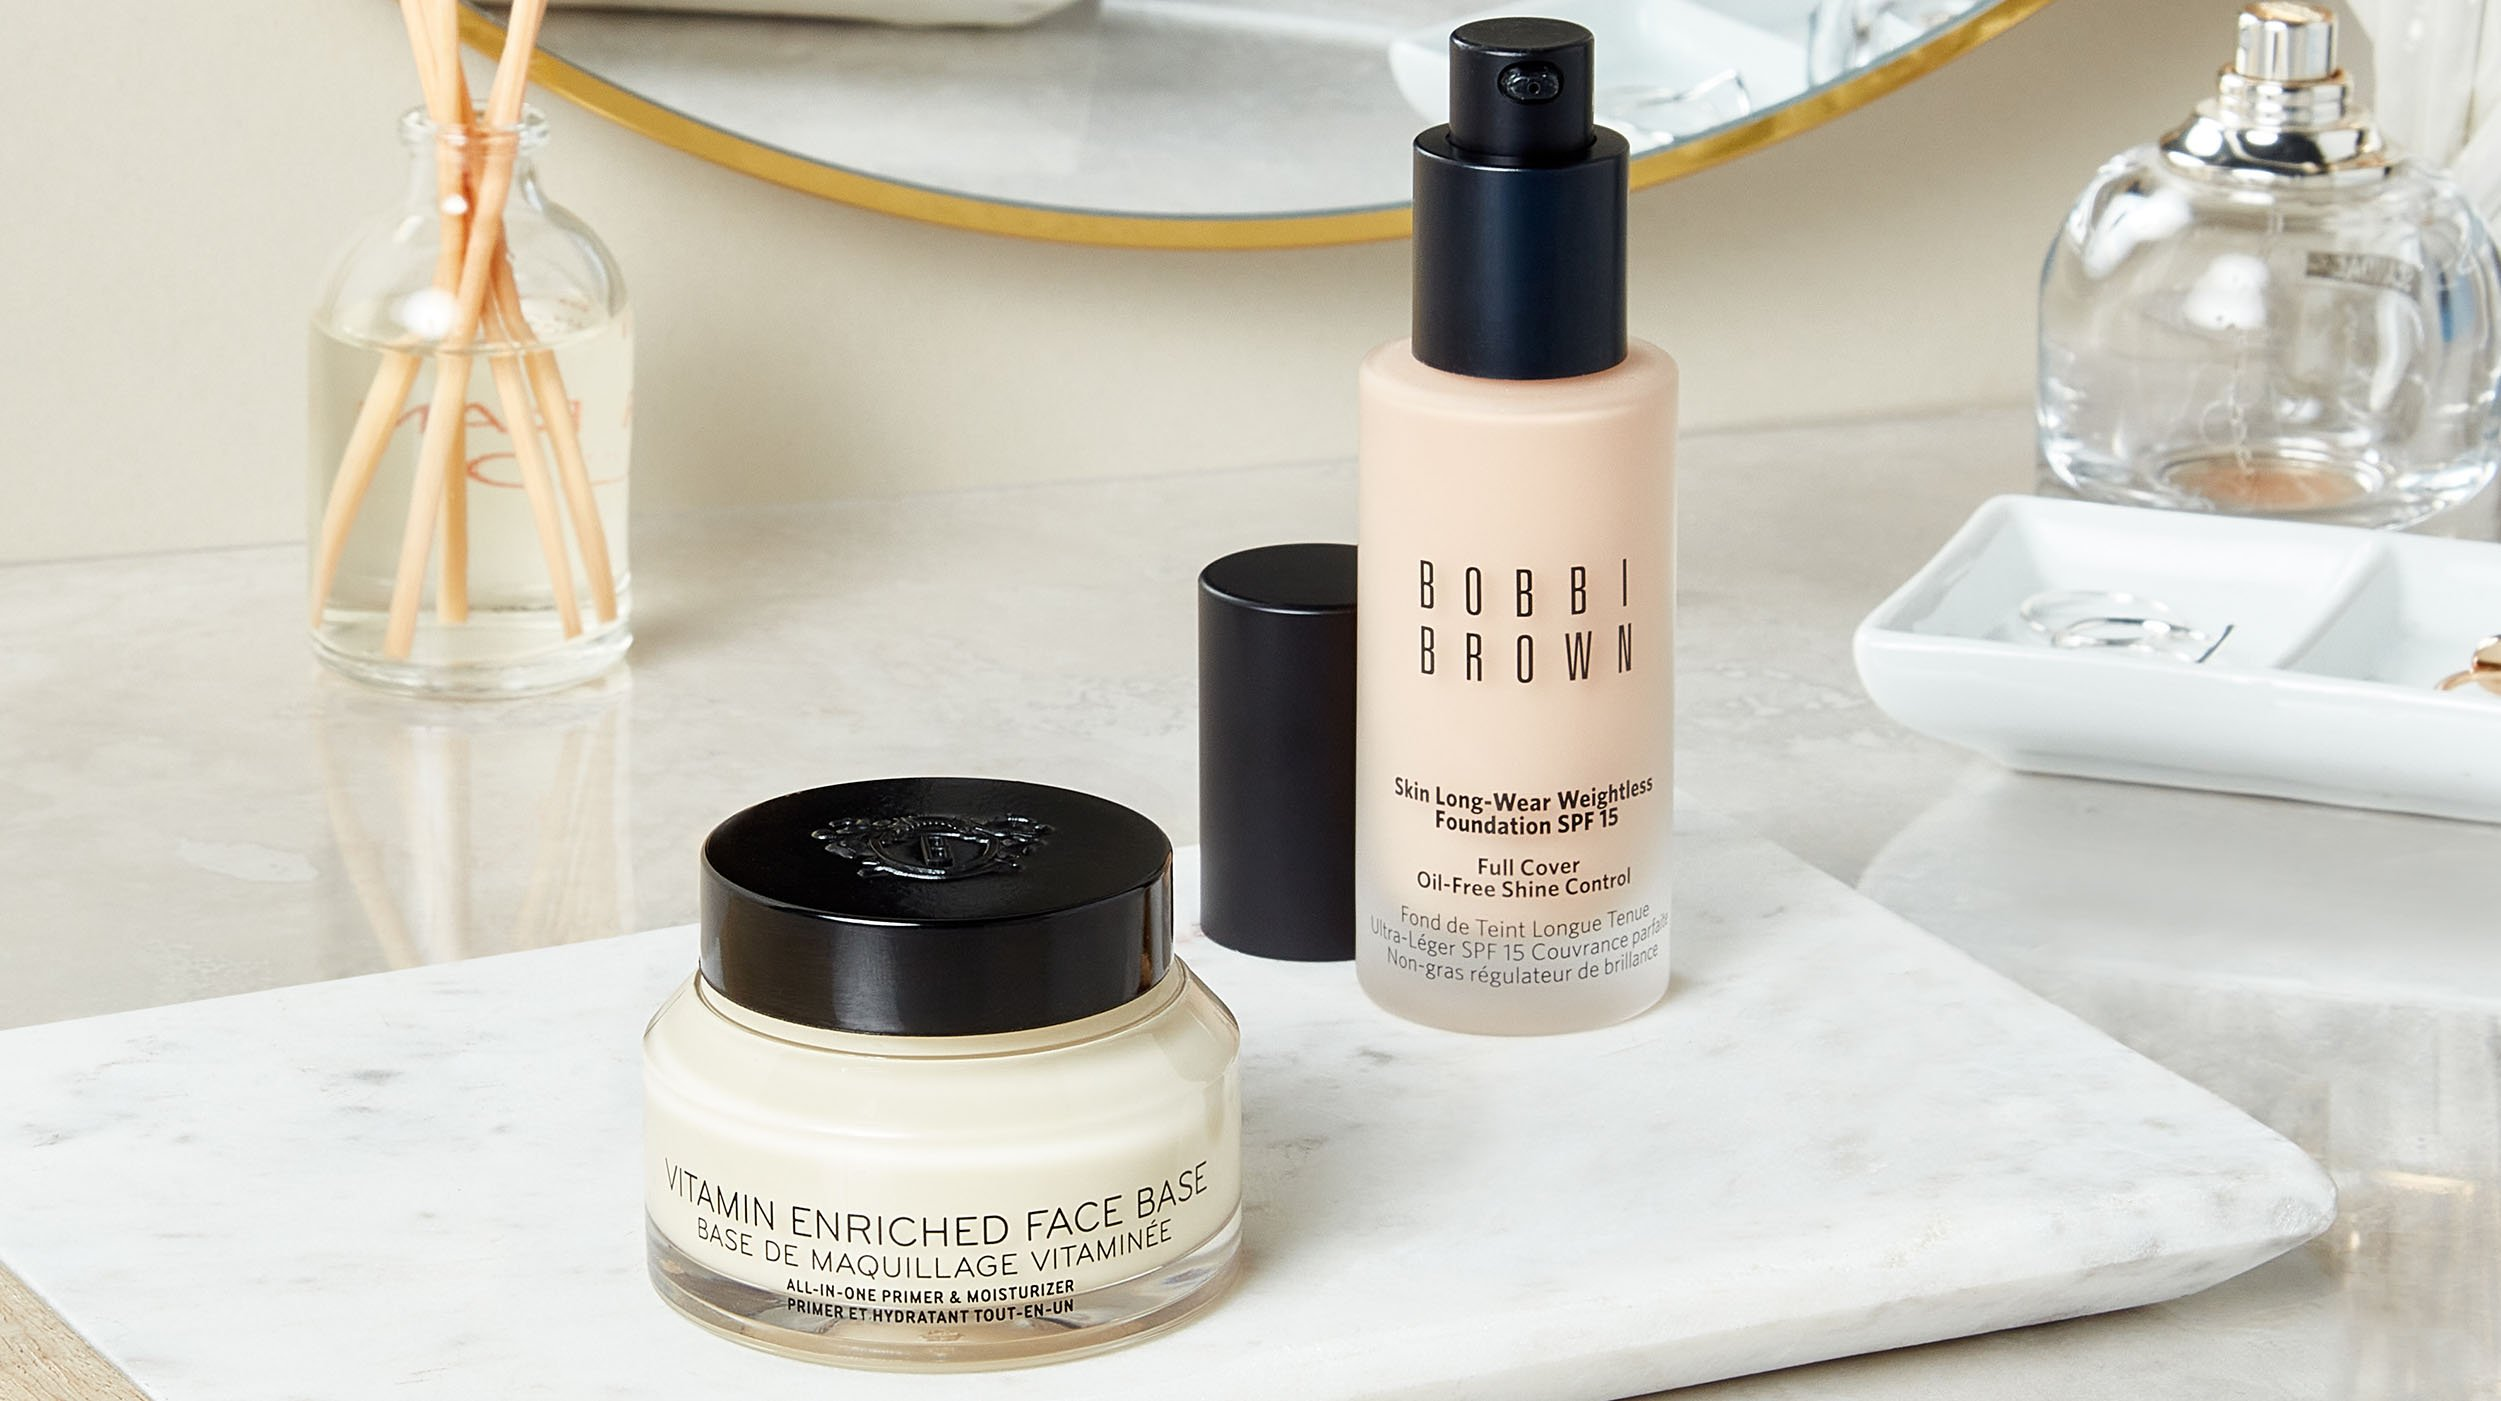 How to use Bobbi Brown Vitamin Enriched Face Base